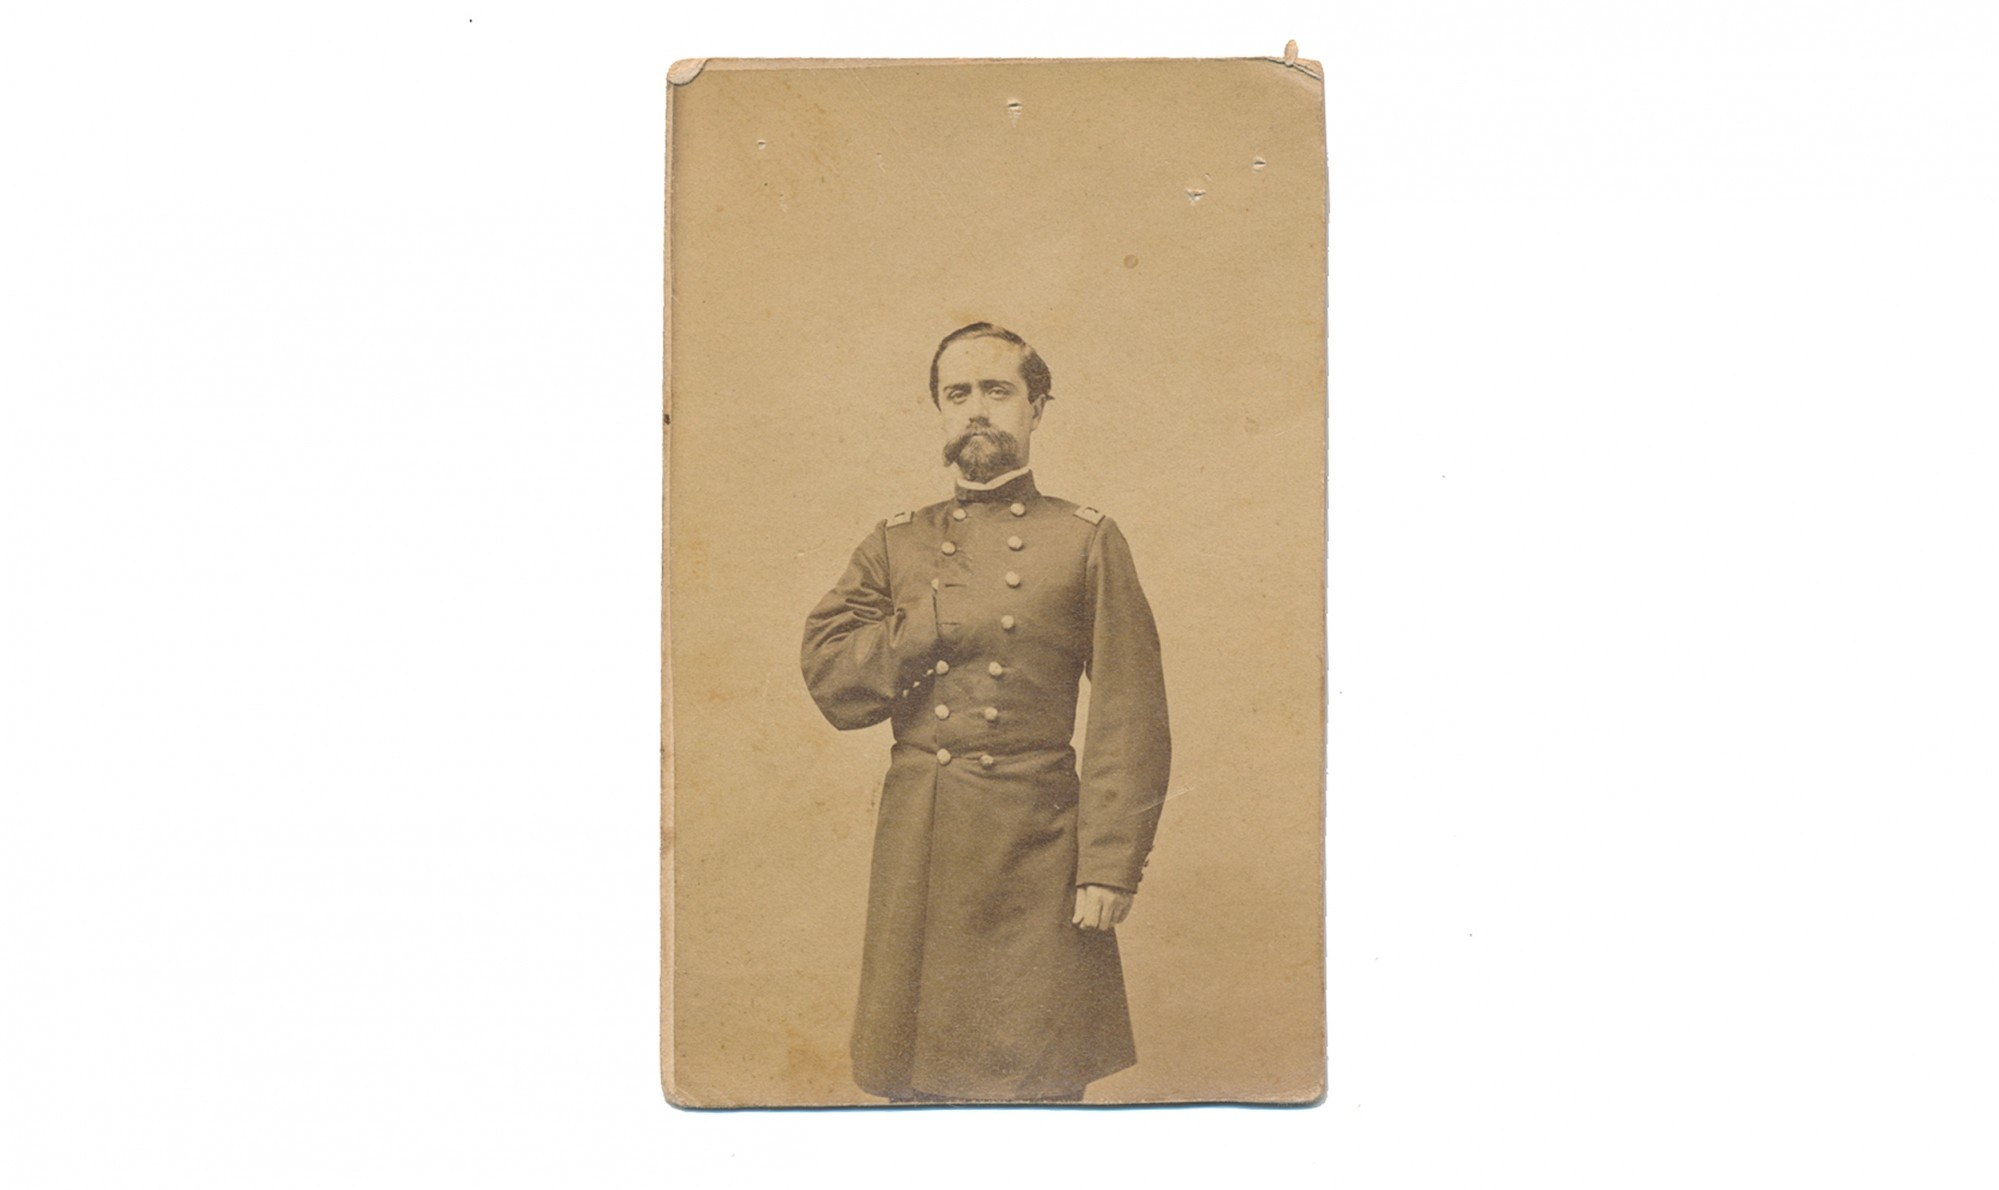 CDV OF JACOB HENRY COUNSELMAN, 1ST MARYLAND CAVALRY, US